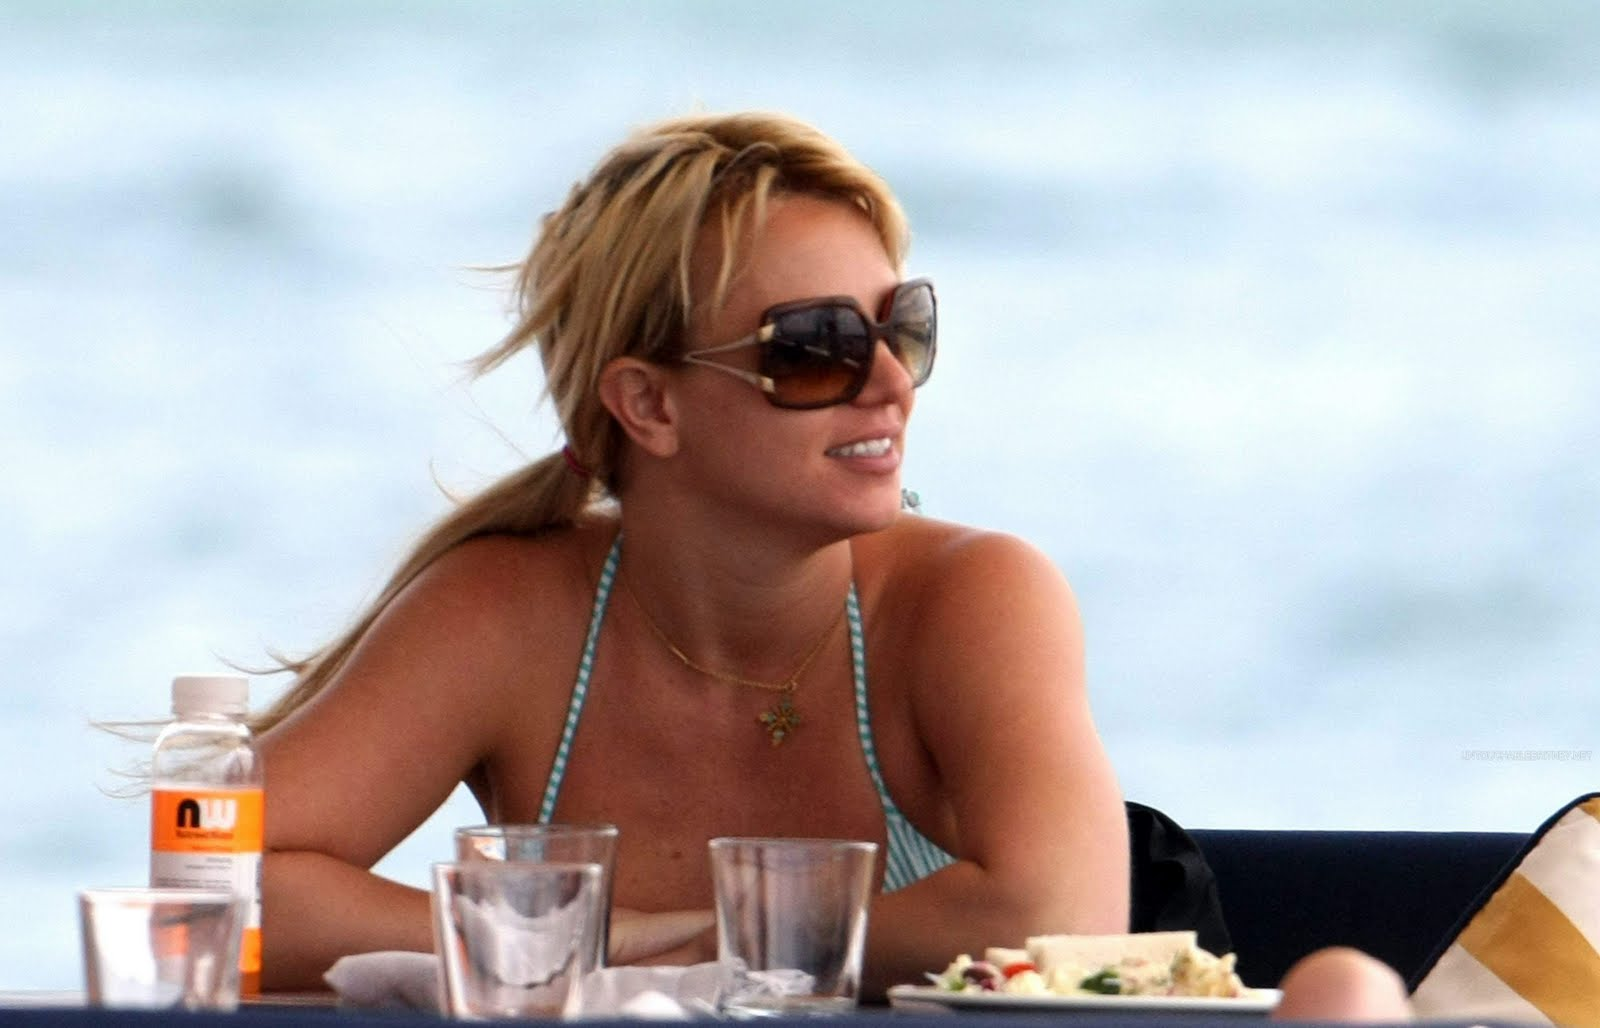 Britney Spears Bikini Photos in Sydney. Britney and her family took a nice ...